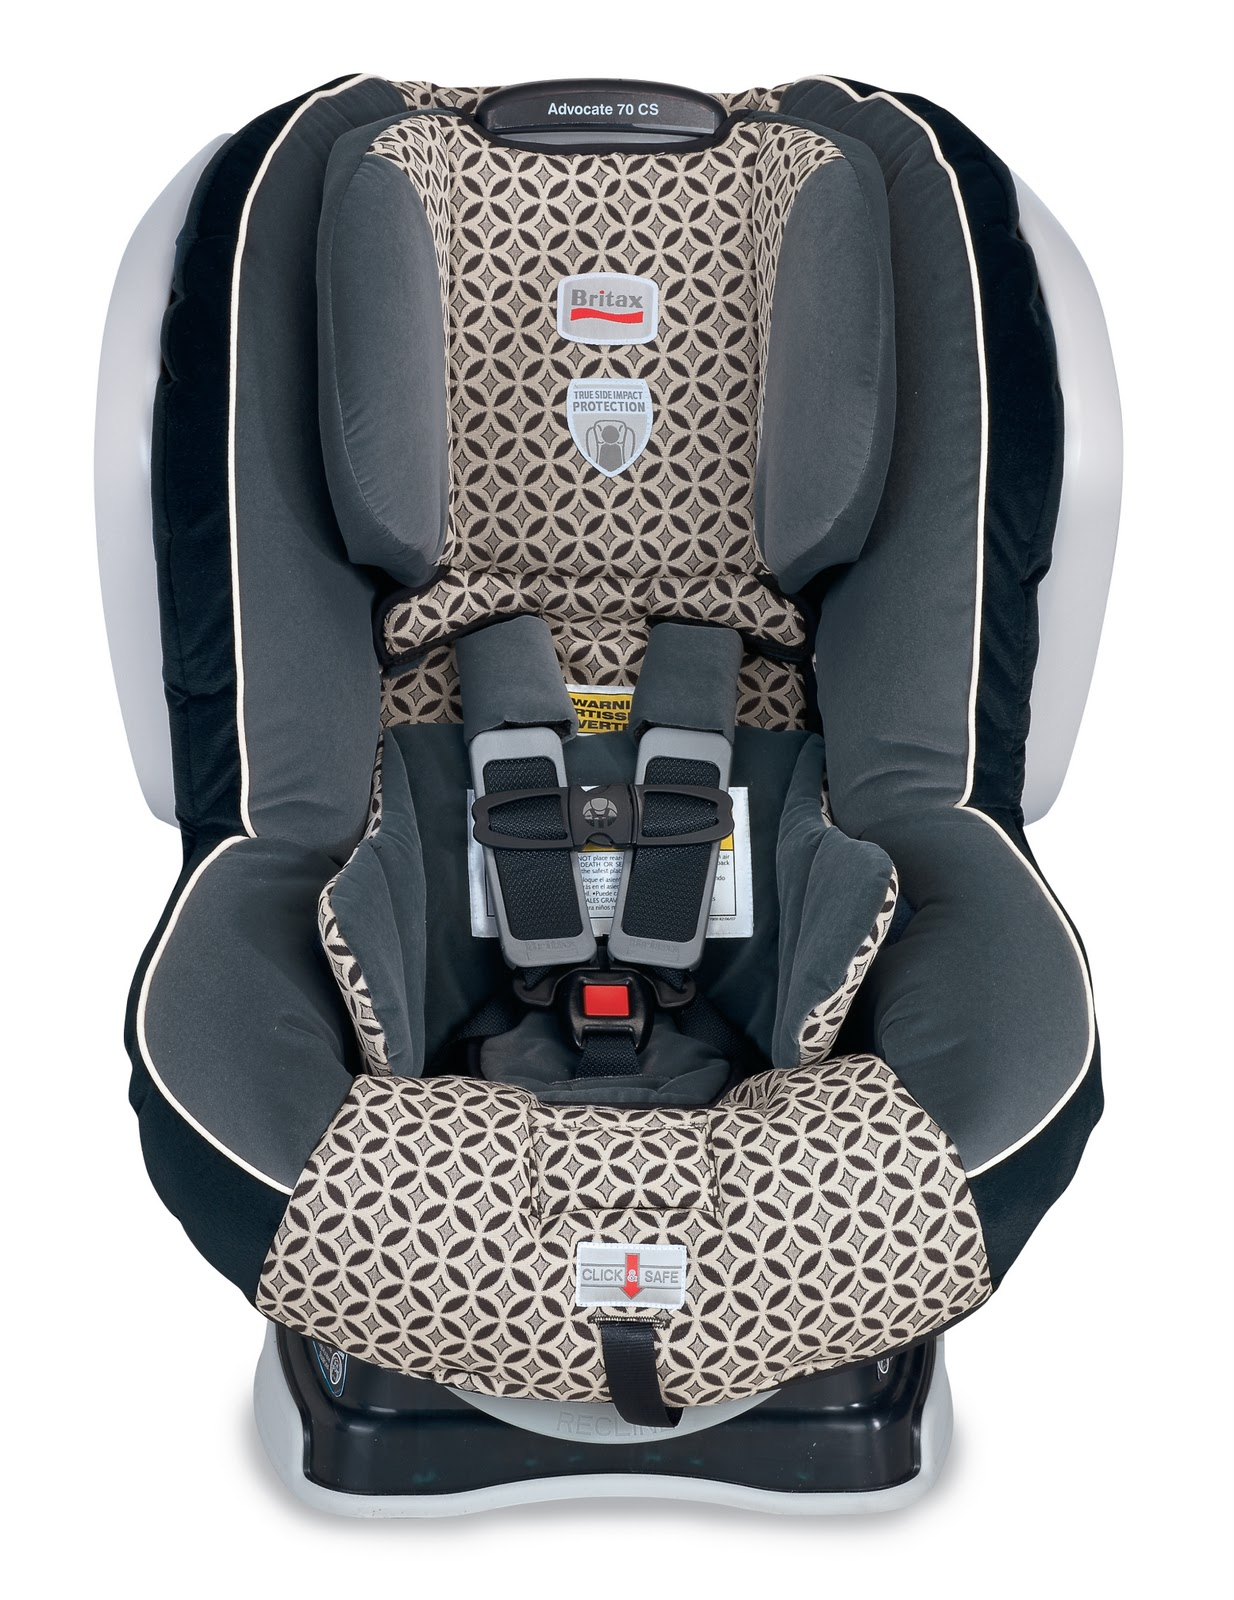 Company Websites Measurements Us Department Of Transportation Later Here We Are I Present The Britax Advocate 70 Cs Car Seat